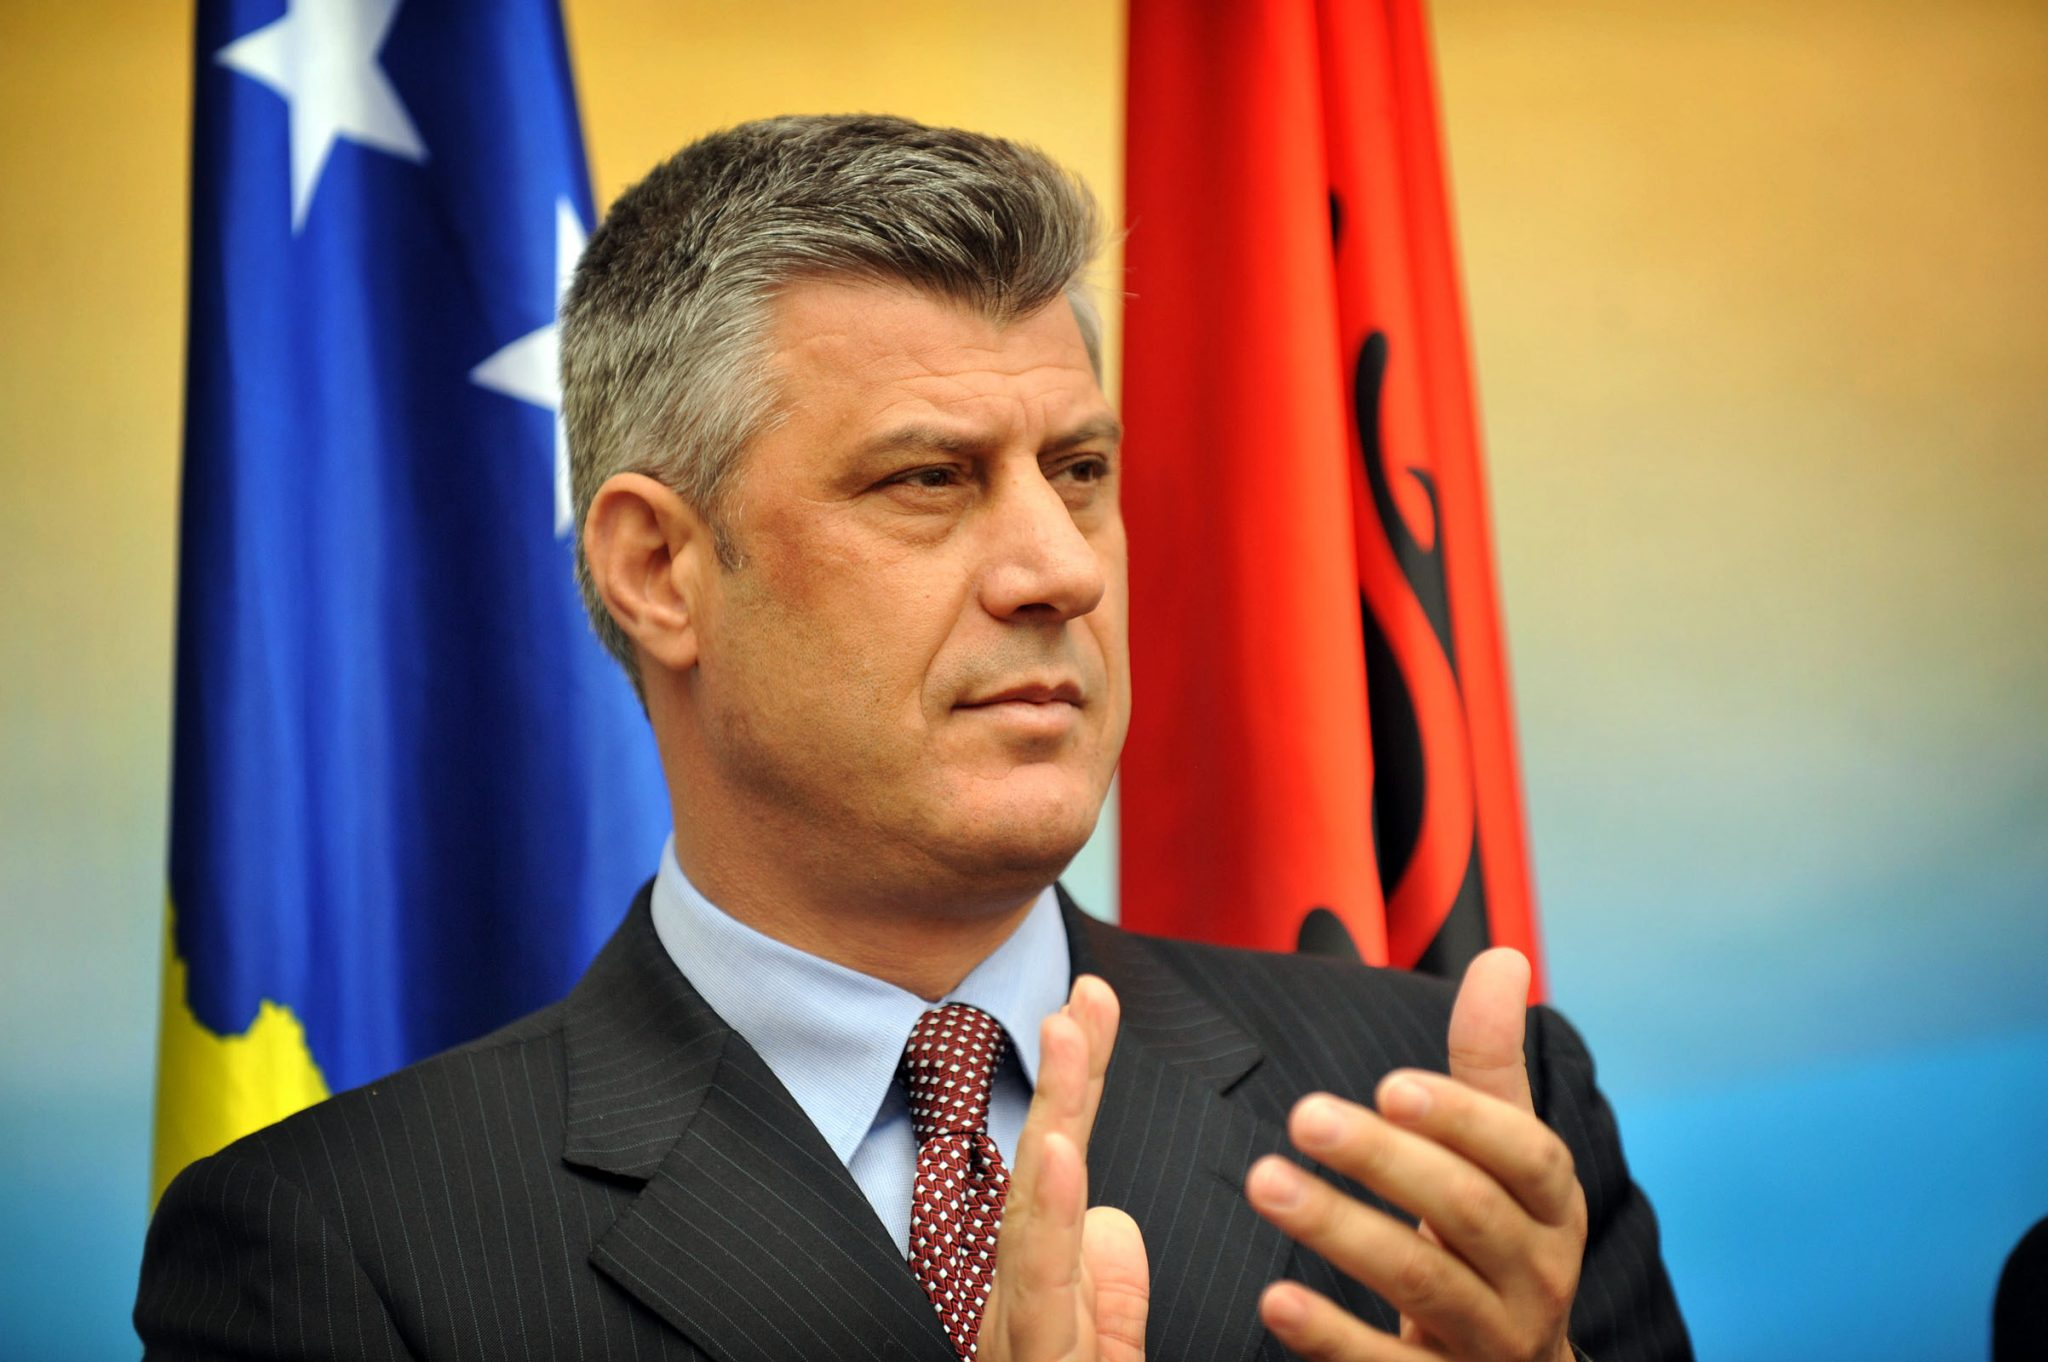 Kosovo's perplexing indictment and its effects